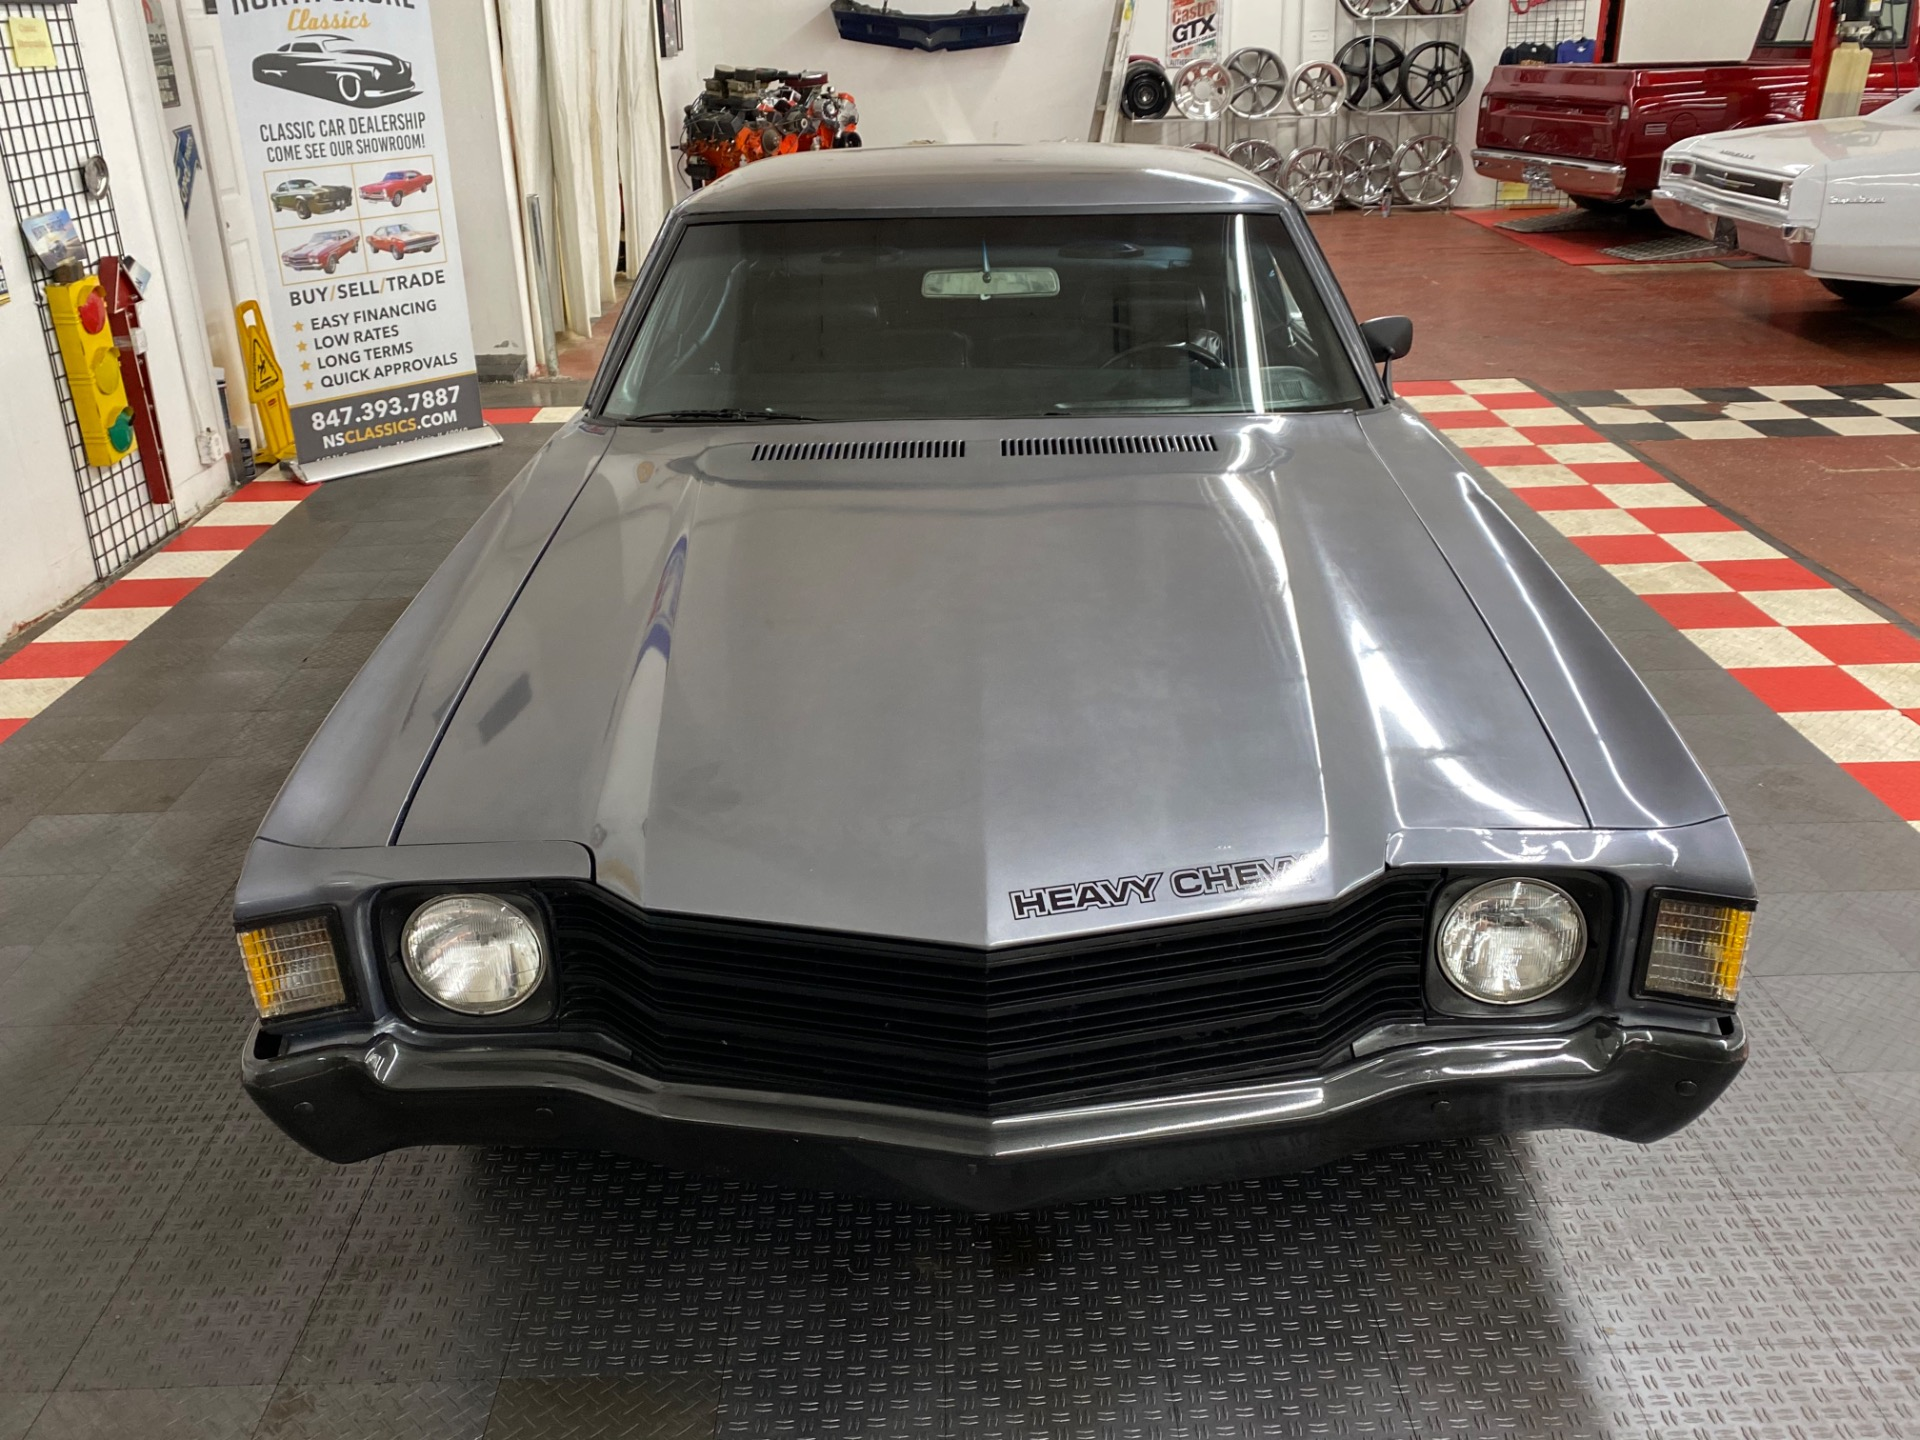 Used 1972 Chevrolet Chevelle Heavy Chevy Tribute - SEE VIDEO - | Mundelein, IL